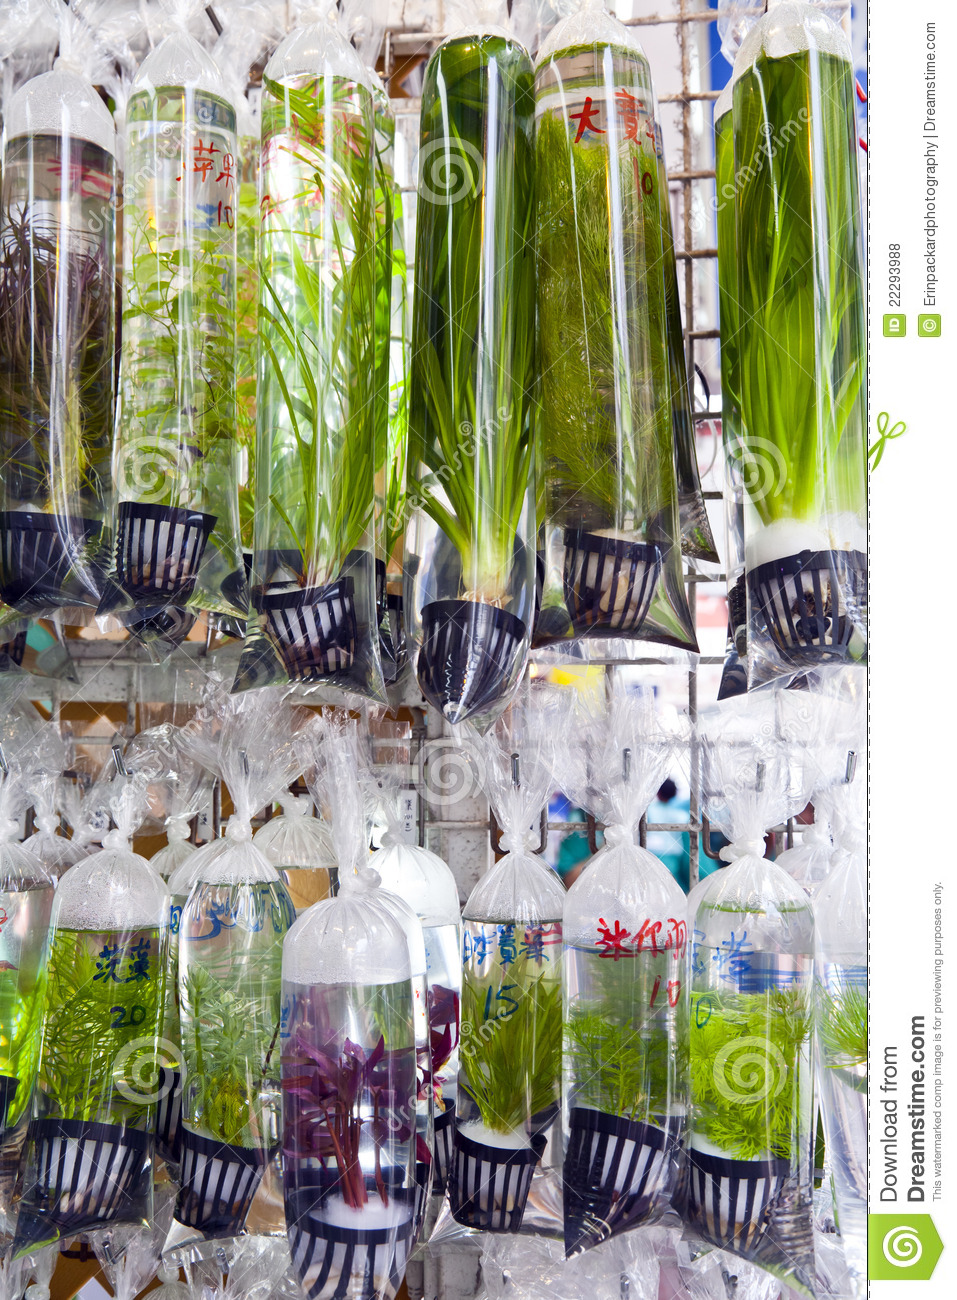 Asian Plants For Sale Freshwater Plants For Sale Stock Photo Image Of Asia 22293988